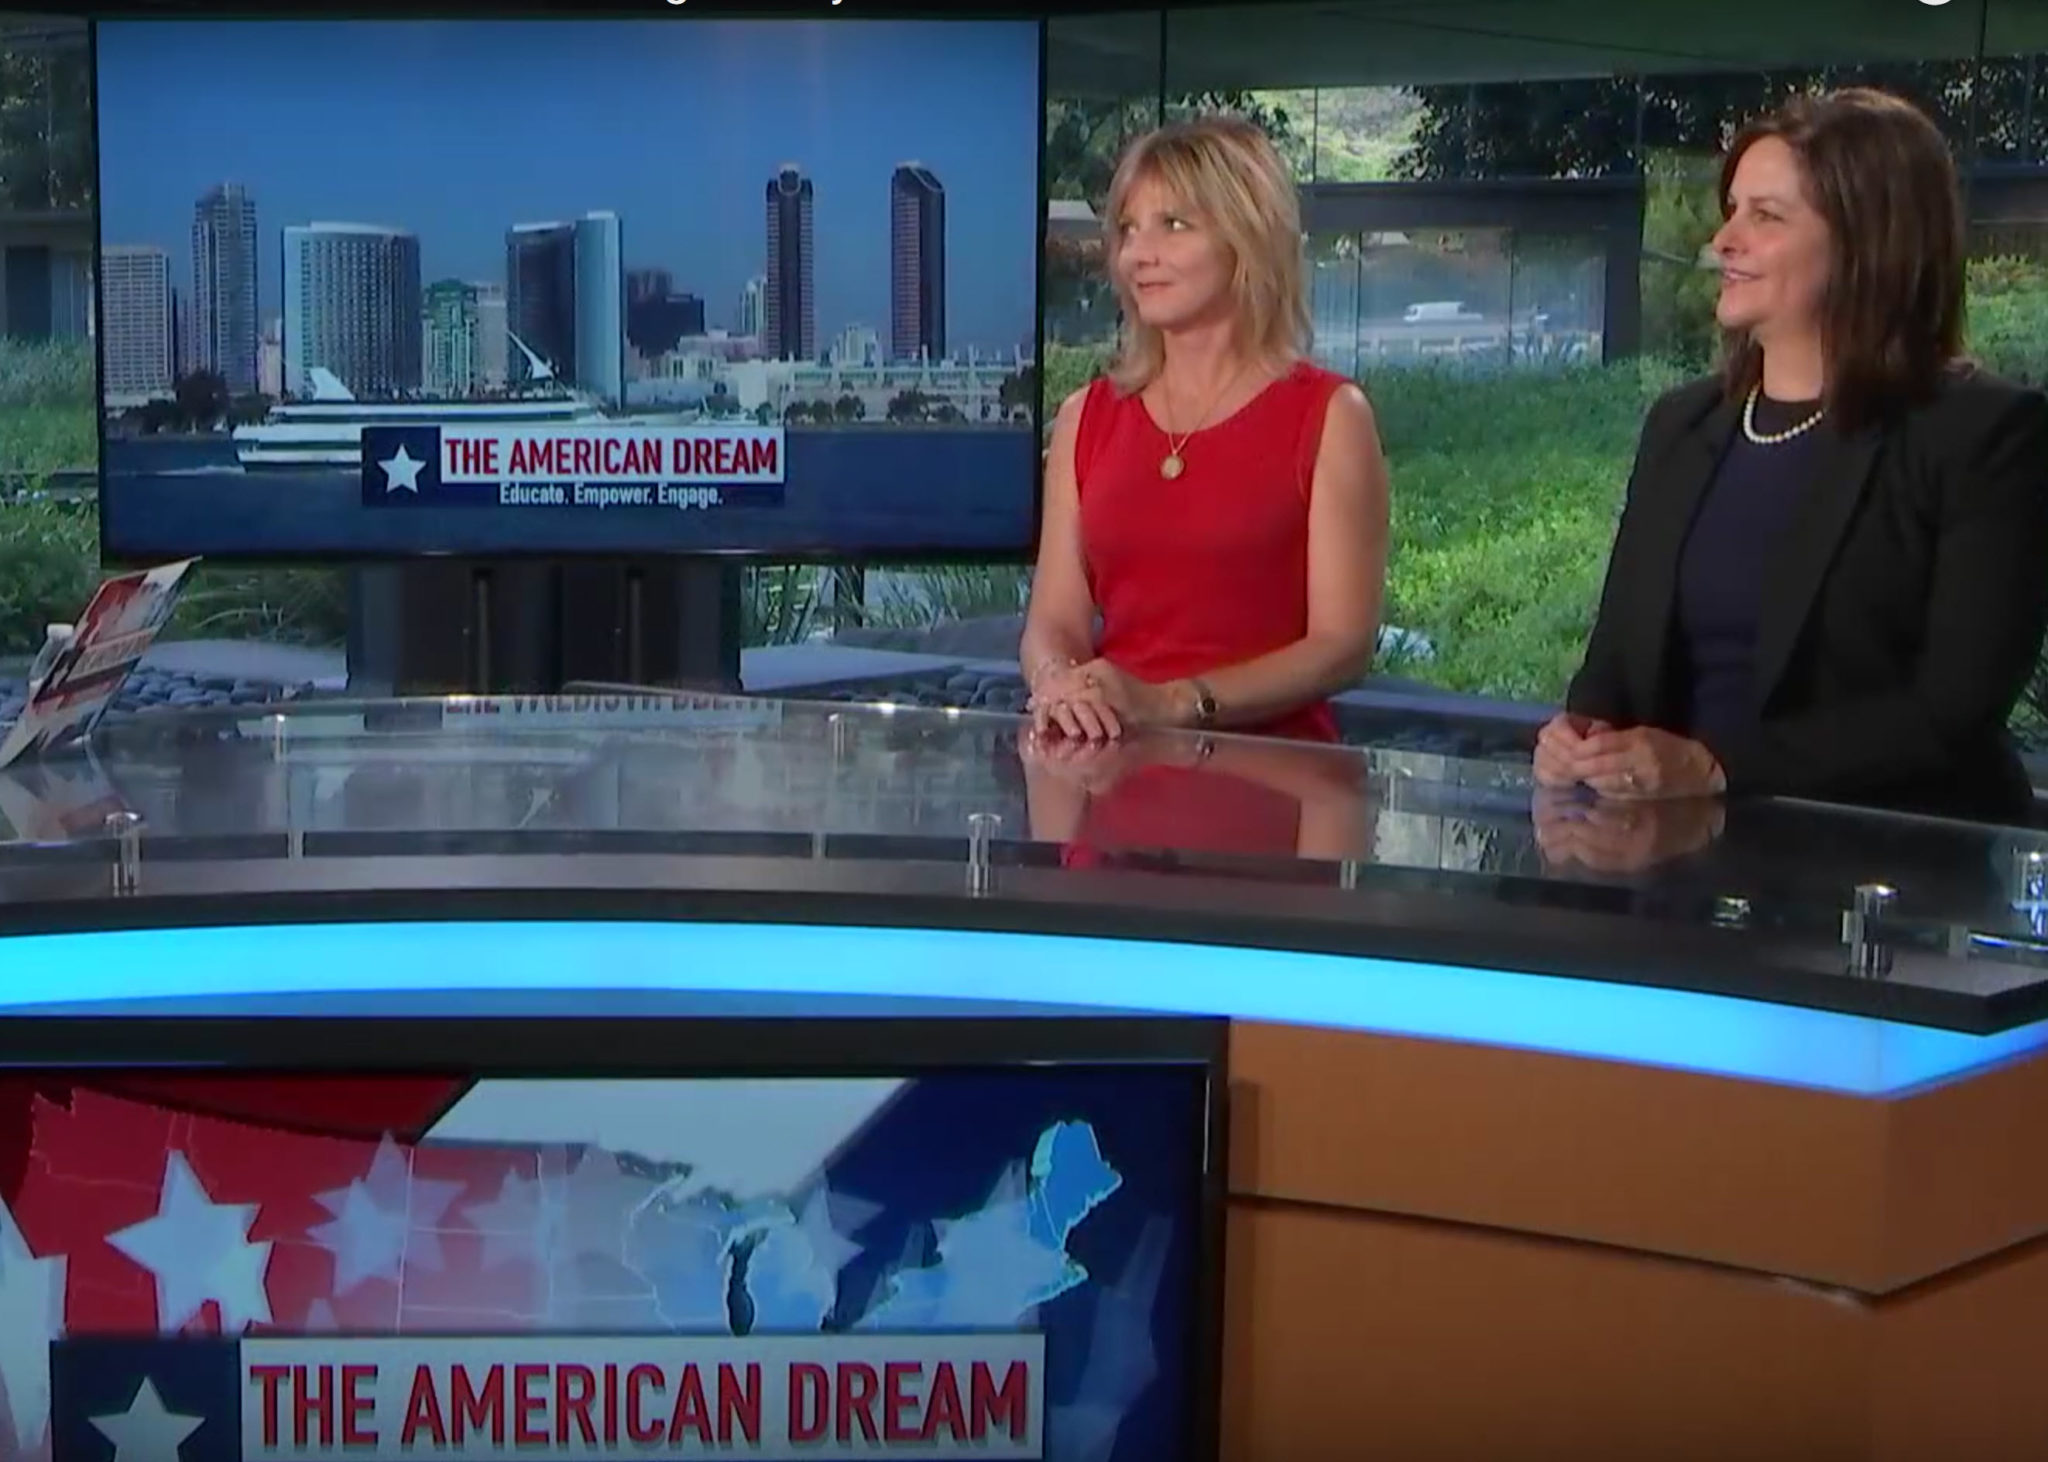 Eve Nasby & Marjorie Morrison on the American Dream Debunking the Myths Around PTSD featured content